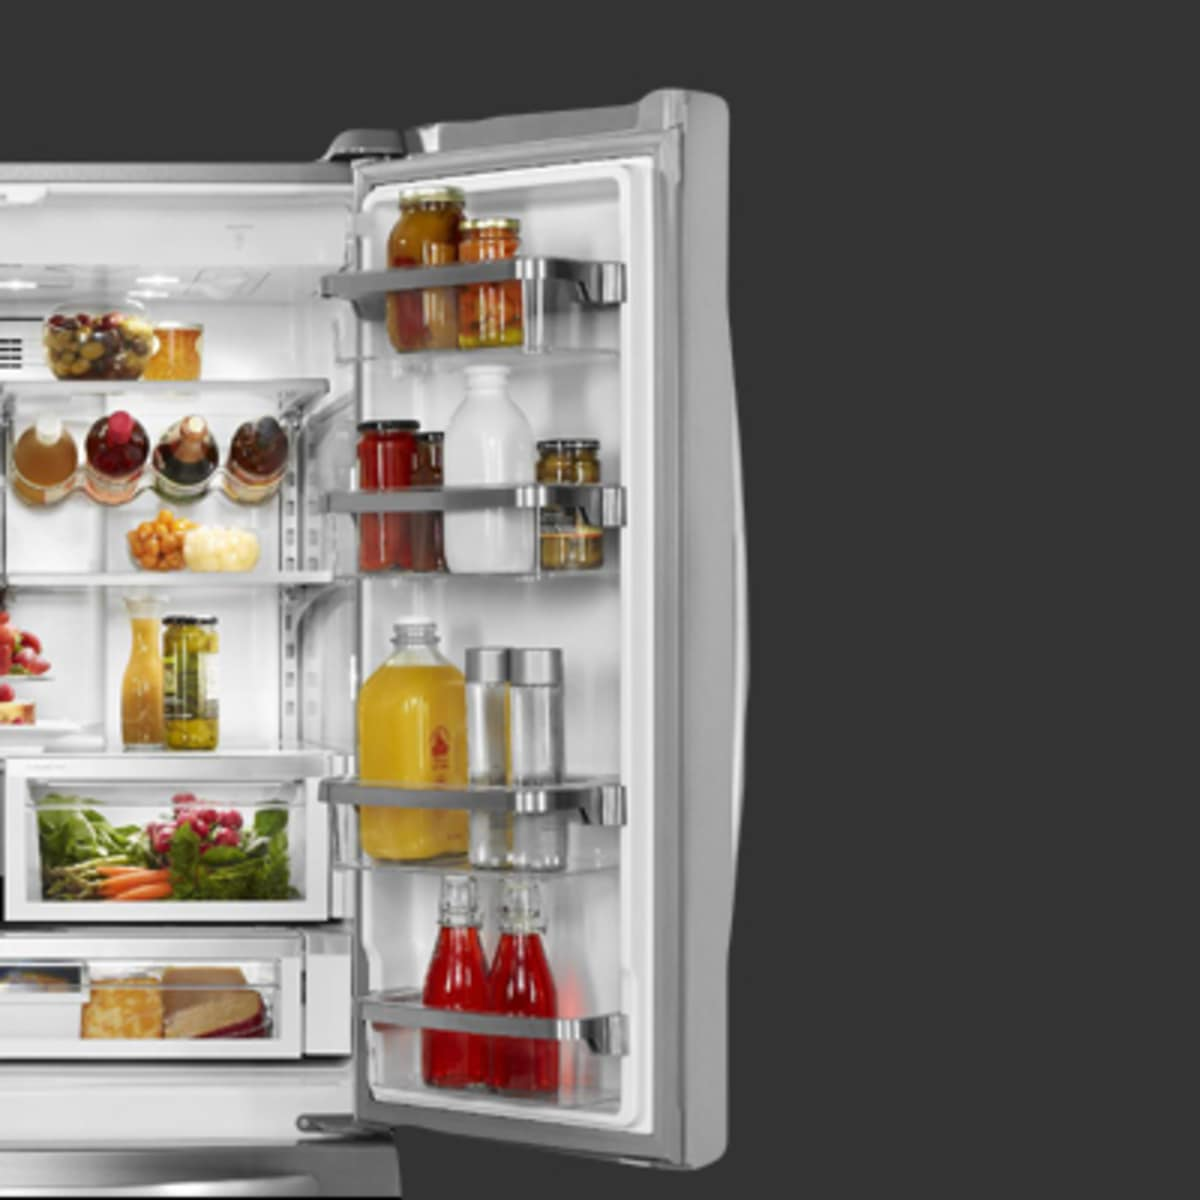 KitchenAid KFIS29PBMS 29 Cu. Ft. French Door Stainless Steel Review on magic chef ice maker repair, marvel ice maker repair, general electric ice maker repair, jenn-air ice maker repair, electrolux icon ice maker repair, sub-zero ice maker repair, ge monogram ice maker repair,